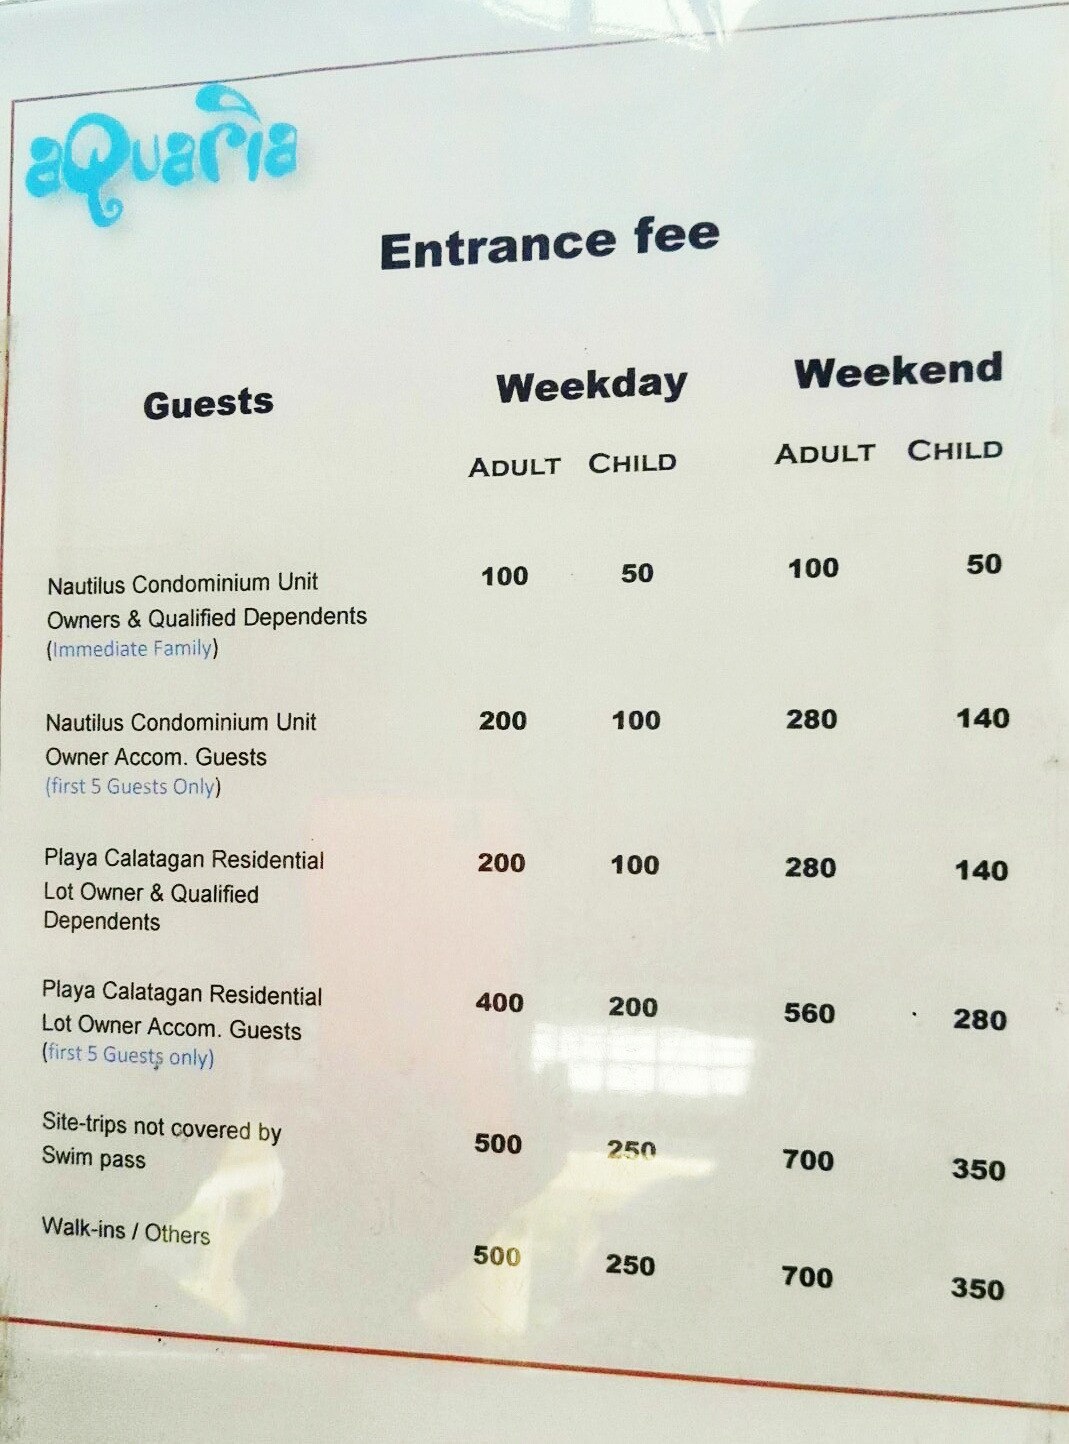 Aquaria Beach Resort Room Rates